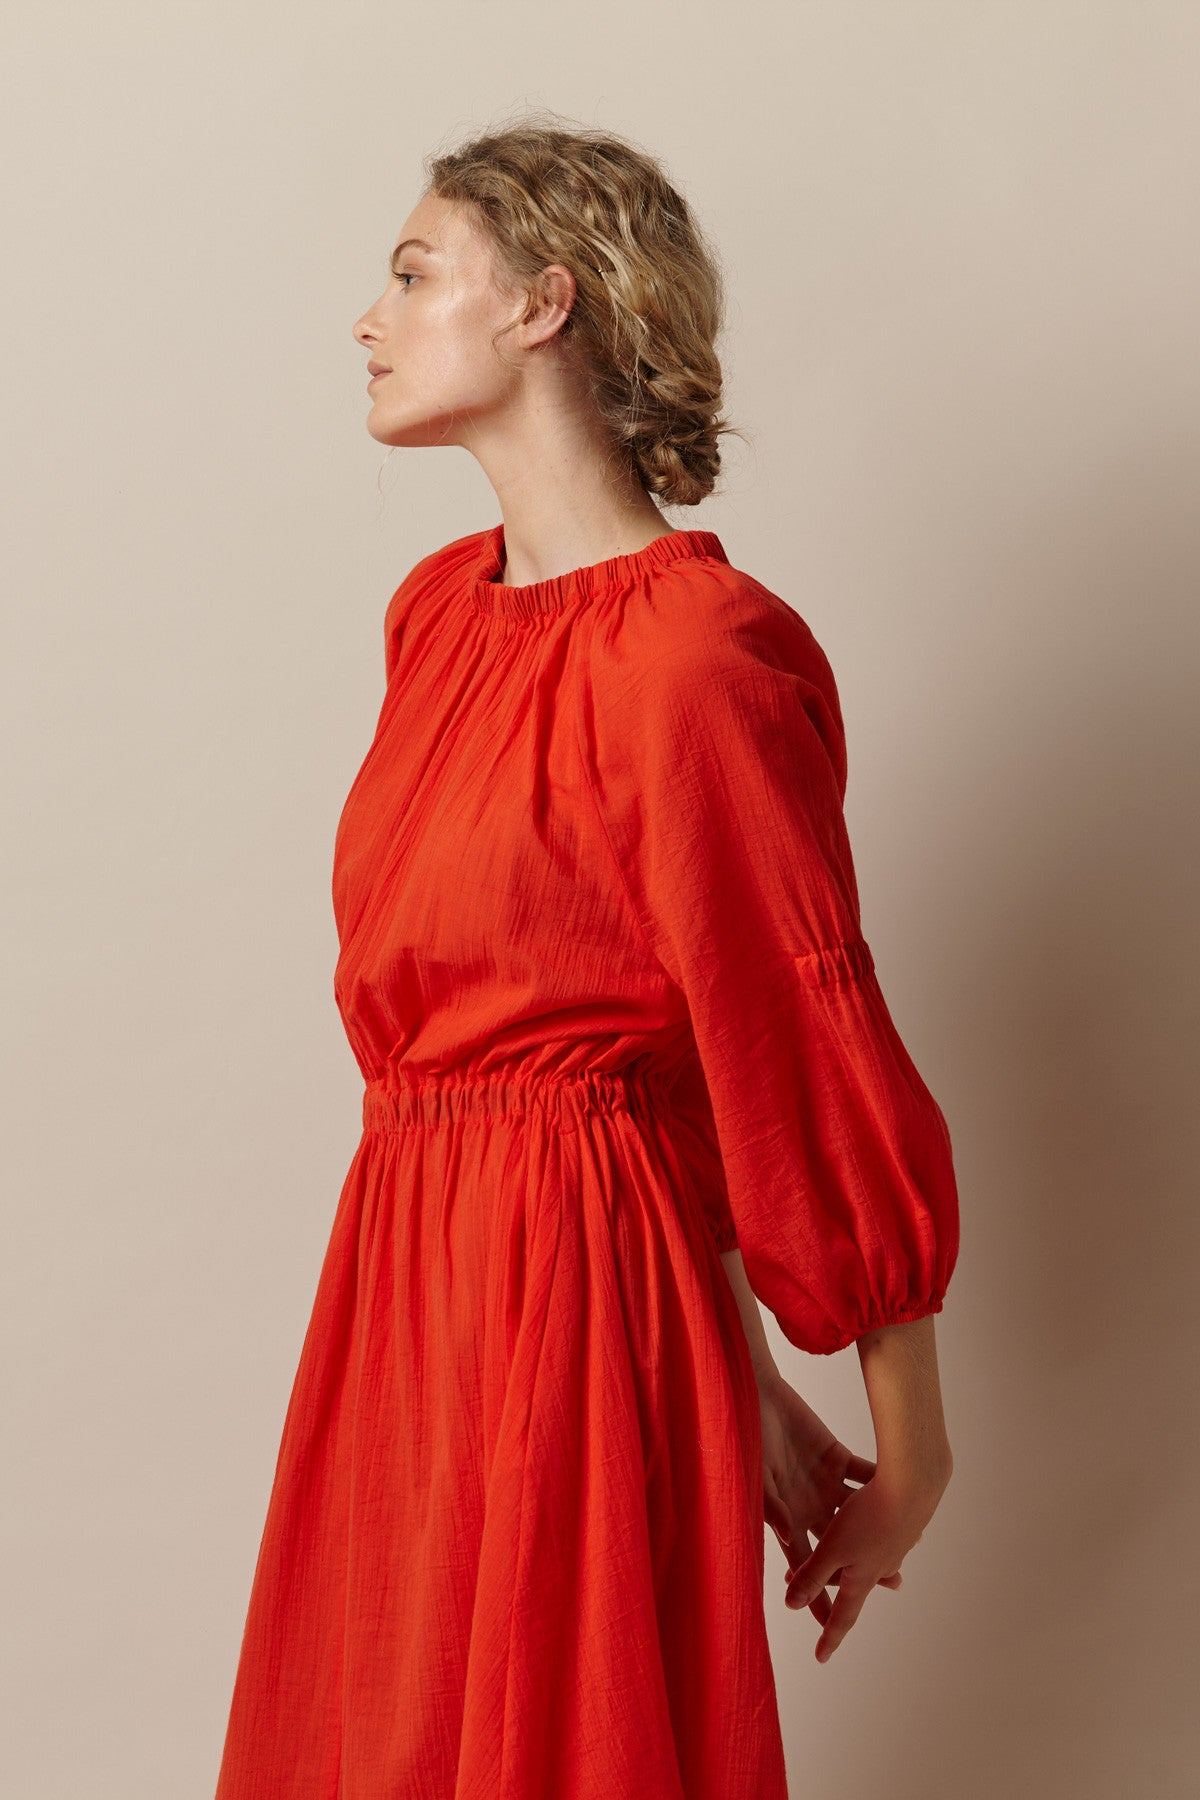 NZ Fashion Clothing Boutique gregorythelabel SS17 Freska Dress Japanese Cotton Voile Washer Finish Vermillion Gather Neck Dress Made in NZ